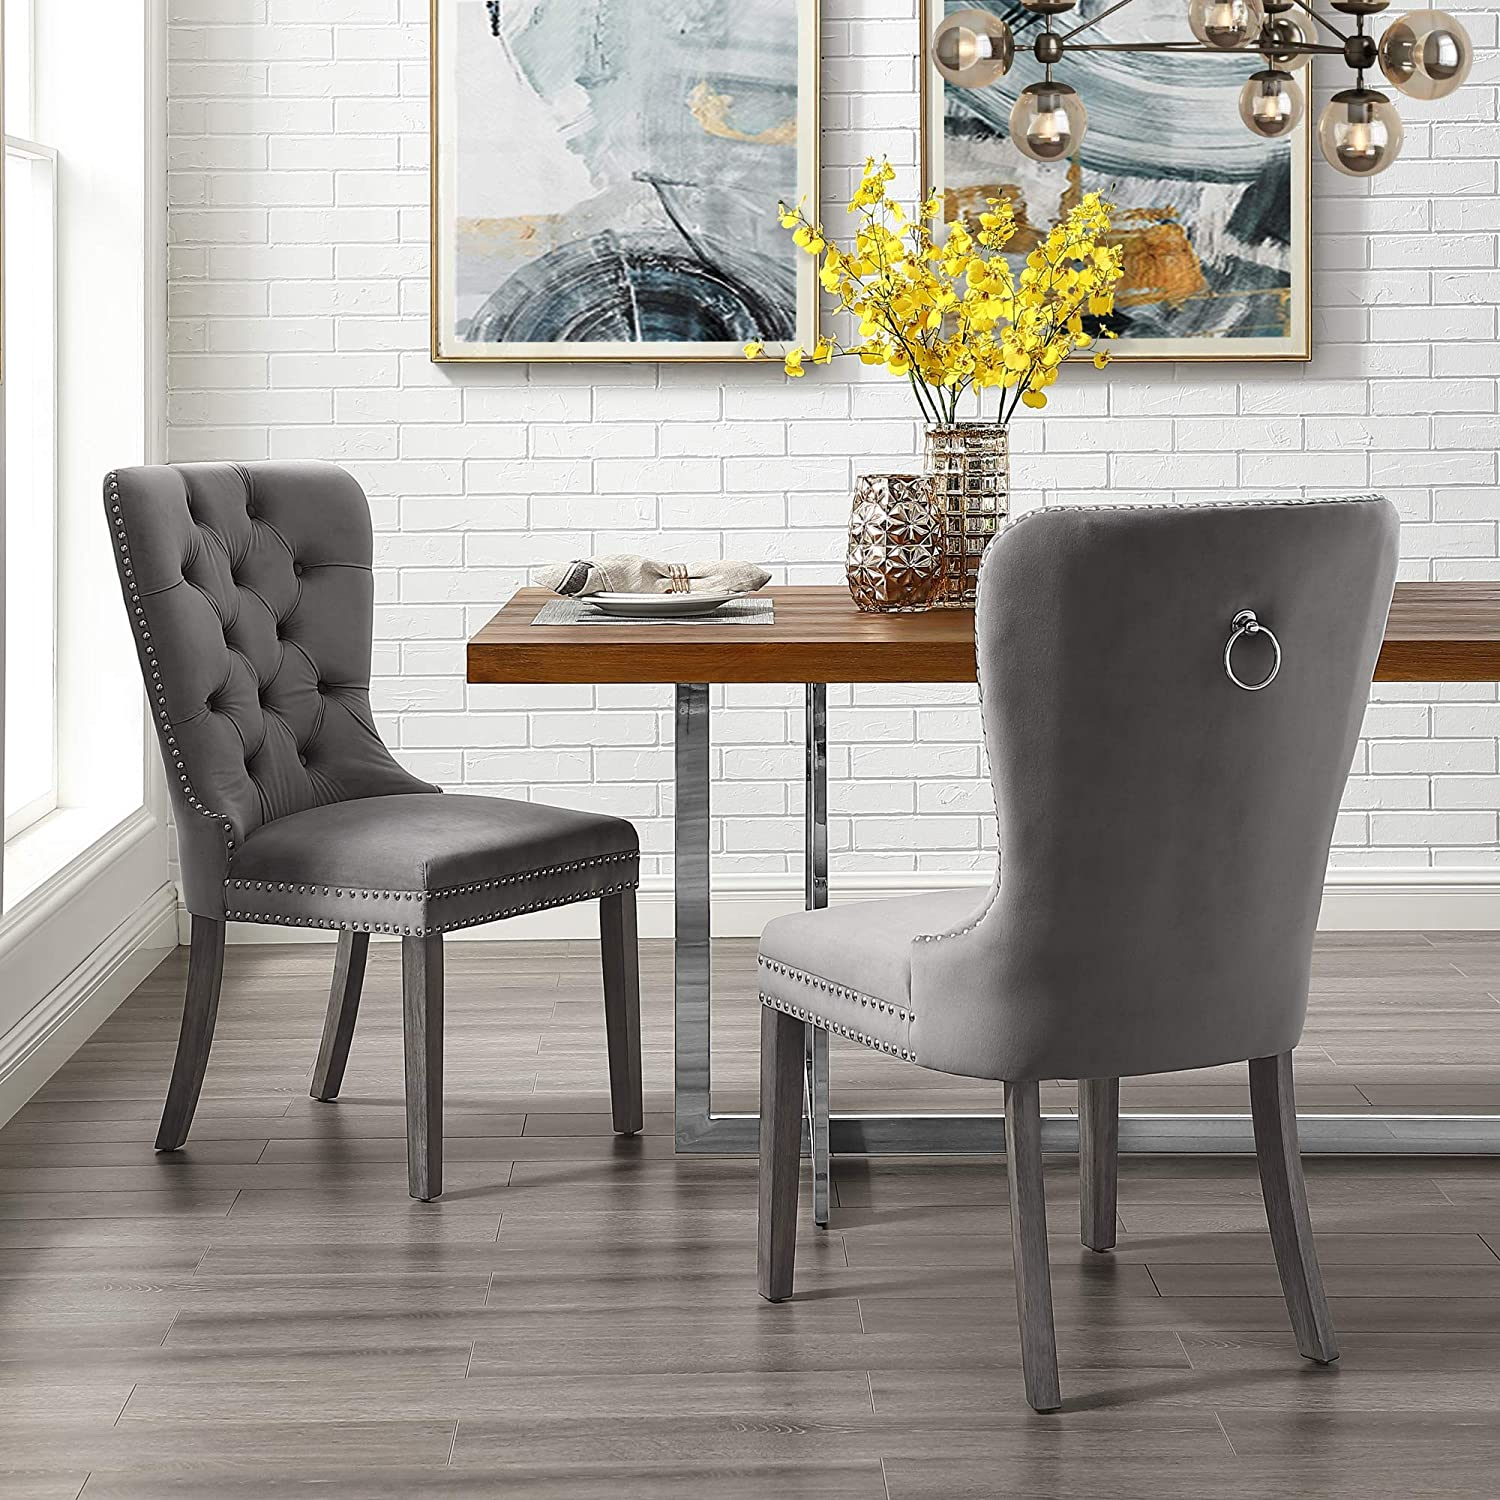 Amazon Com Inspiredhome Grey Velvet Dining Chair Design Brielle Set Of 2 Tufted Ring Handle Chrome Nailhead Finish Chairs